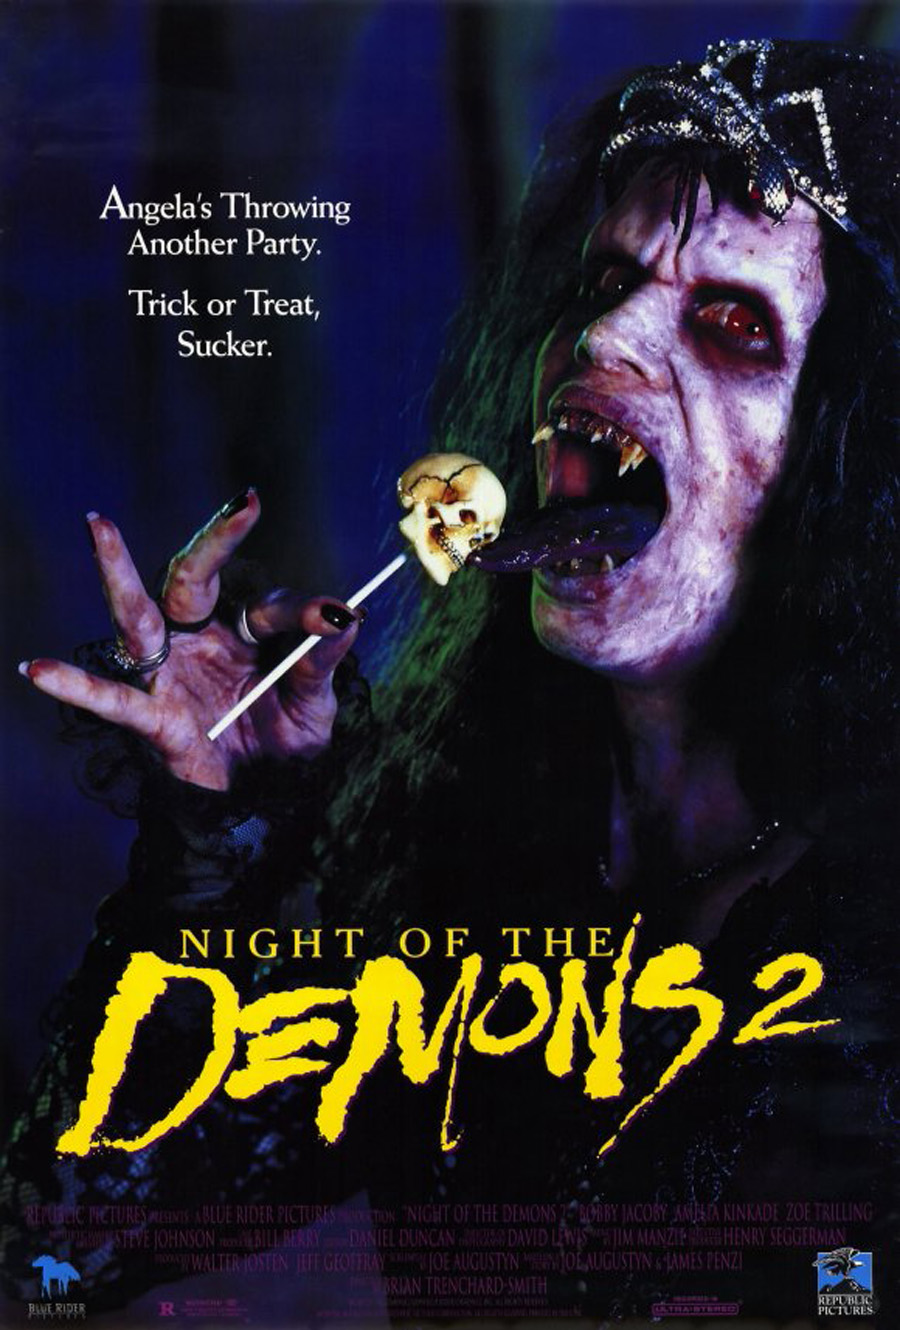 Amelia Kinkade Night Of The Demons night of the demons 2 (1994) – pop culture thoughts